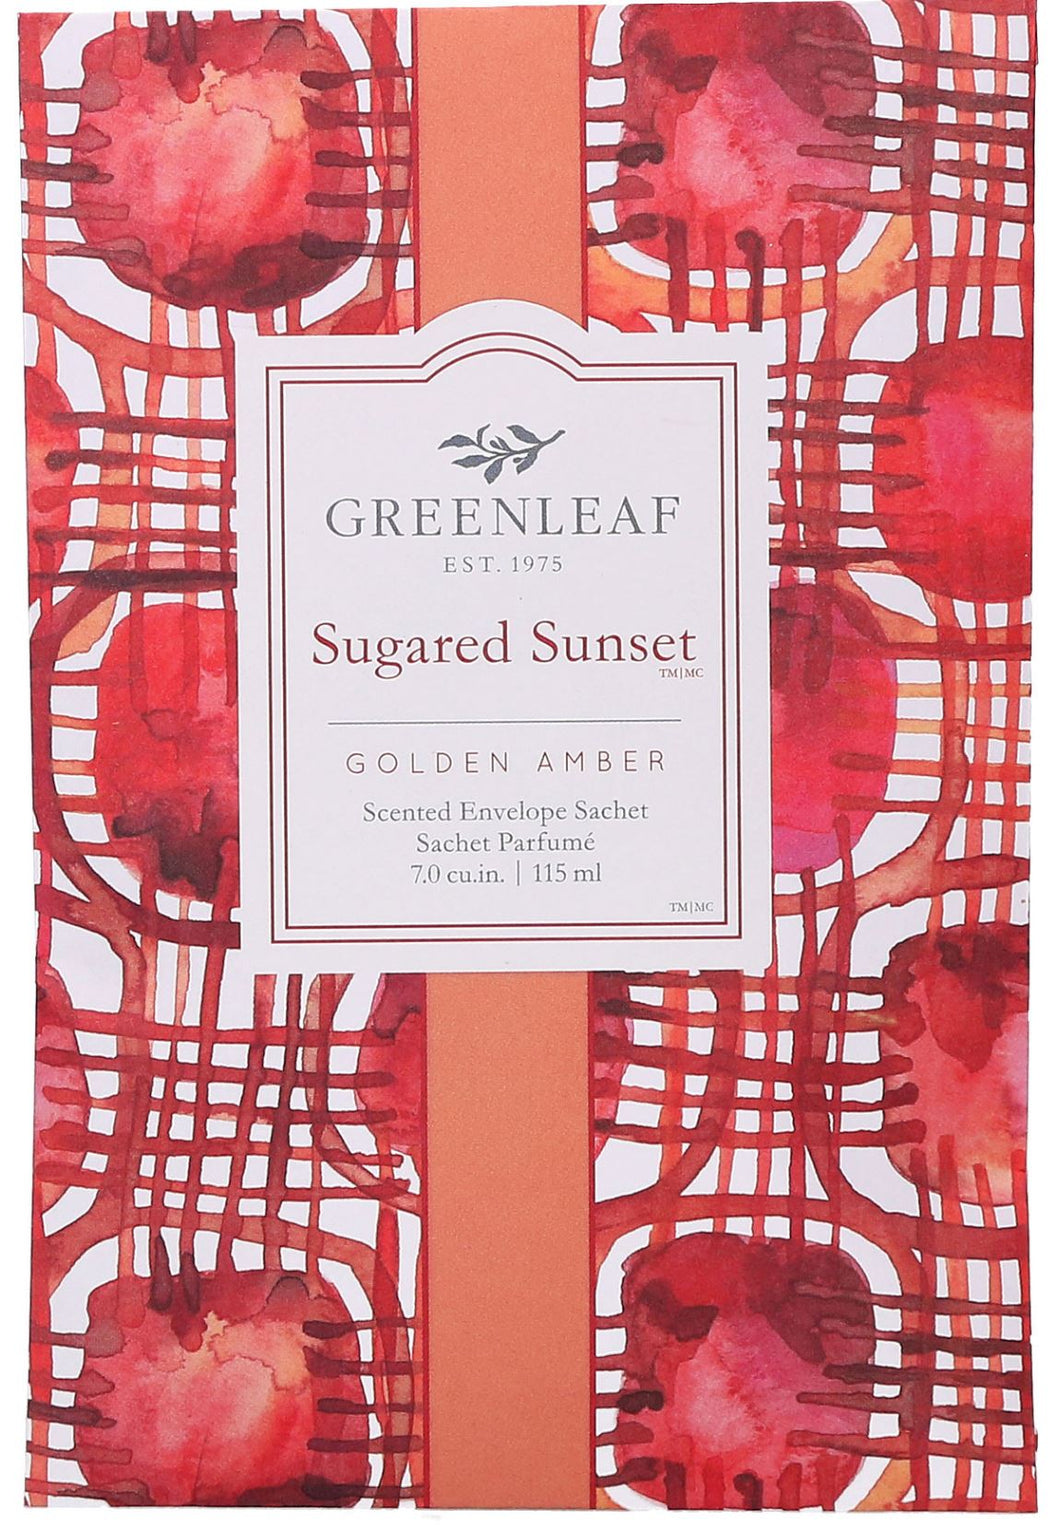 Duftsachet / Sugared Sunset